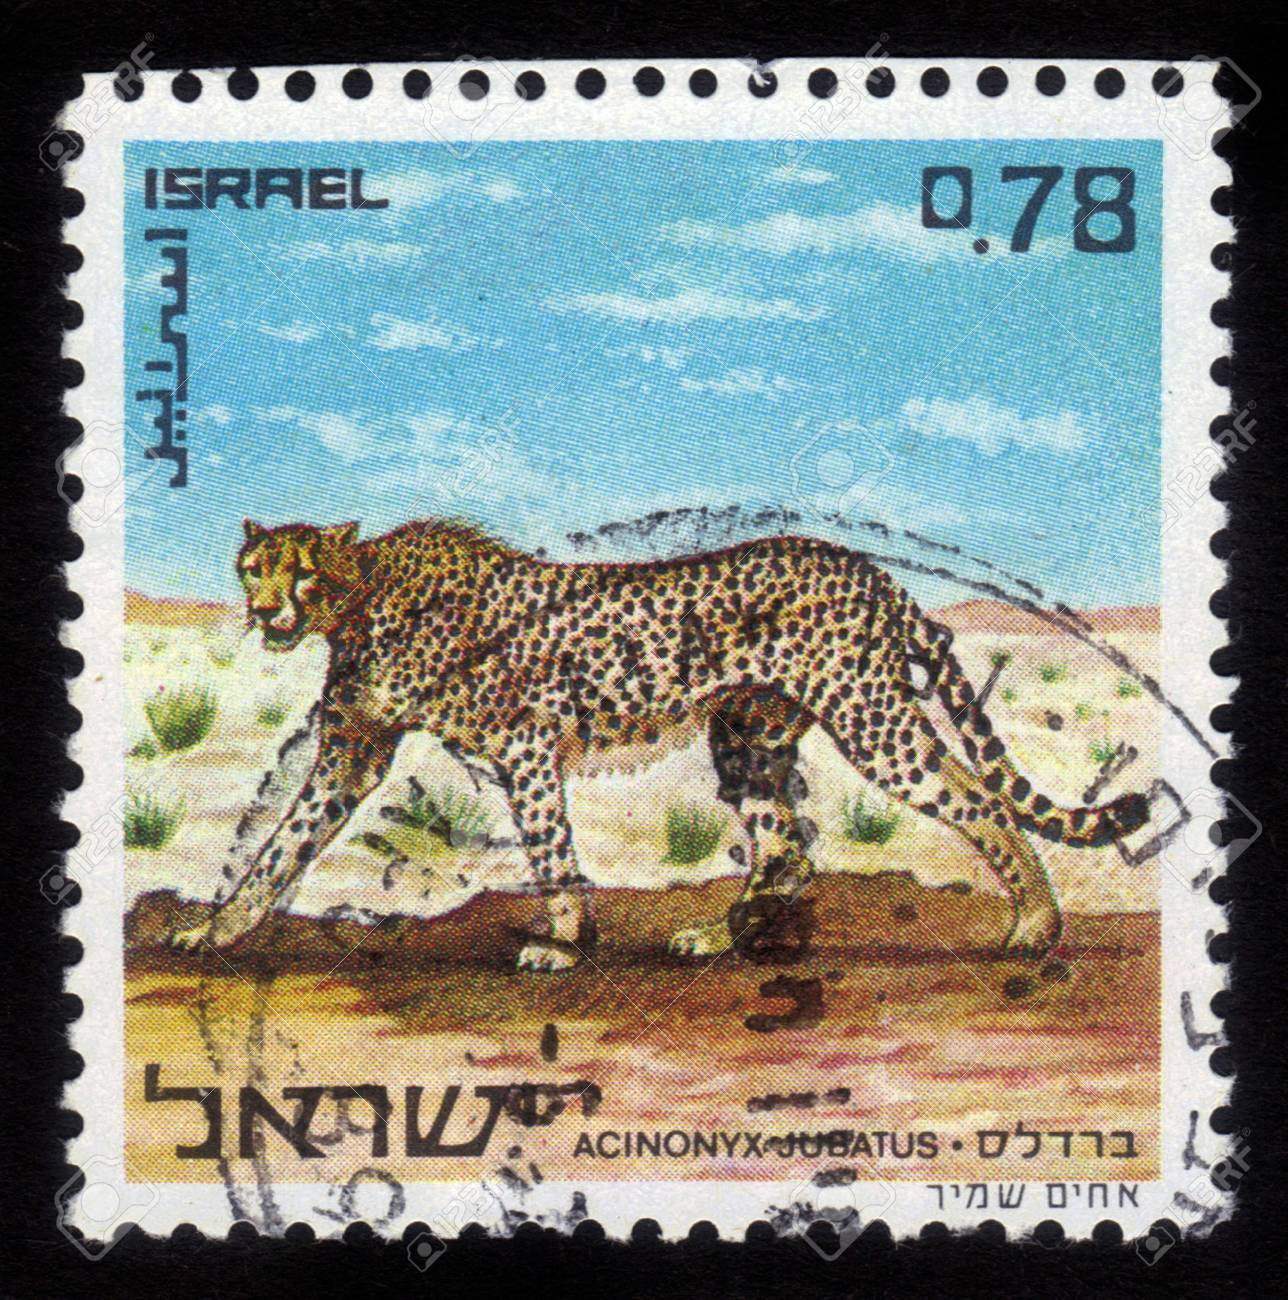 ISRAEL - CIRCA 1971  A stamp printed in Israel, shows image of a cheetah, the world s fastest land animal, circa 1971 Stock Photo - 14794678